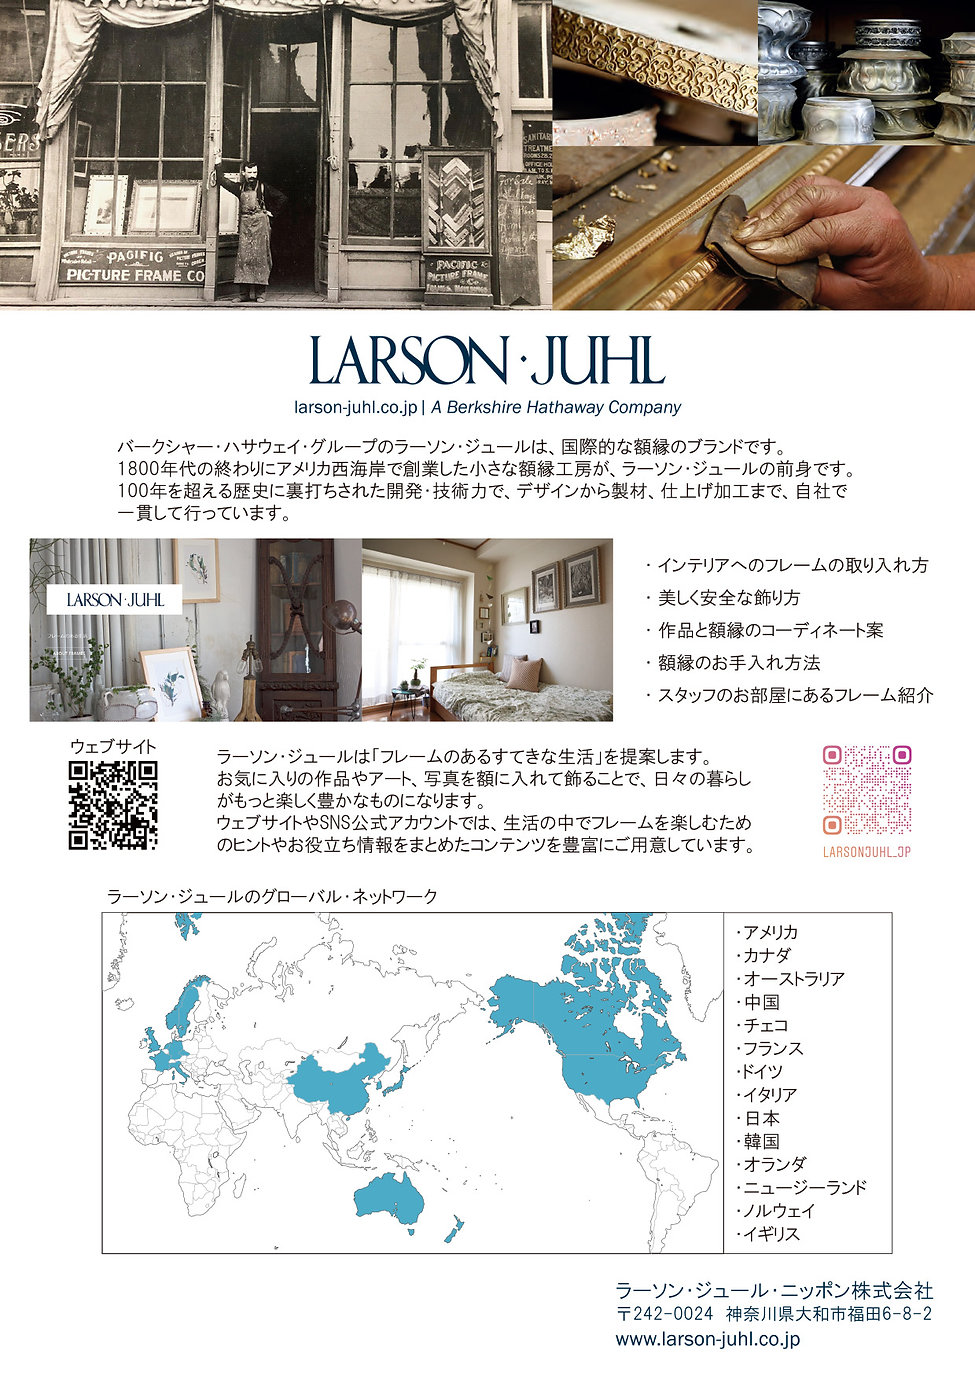 small About ラーソンジュール.jpg